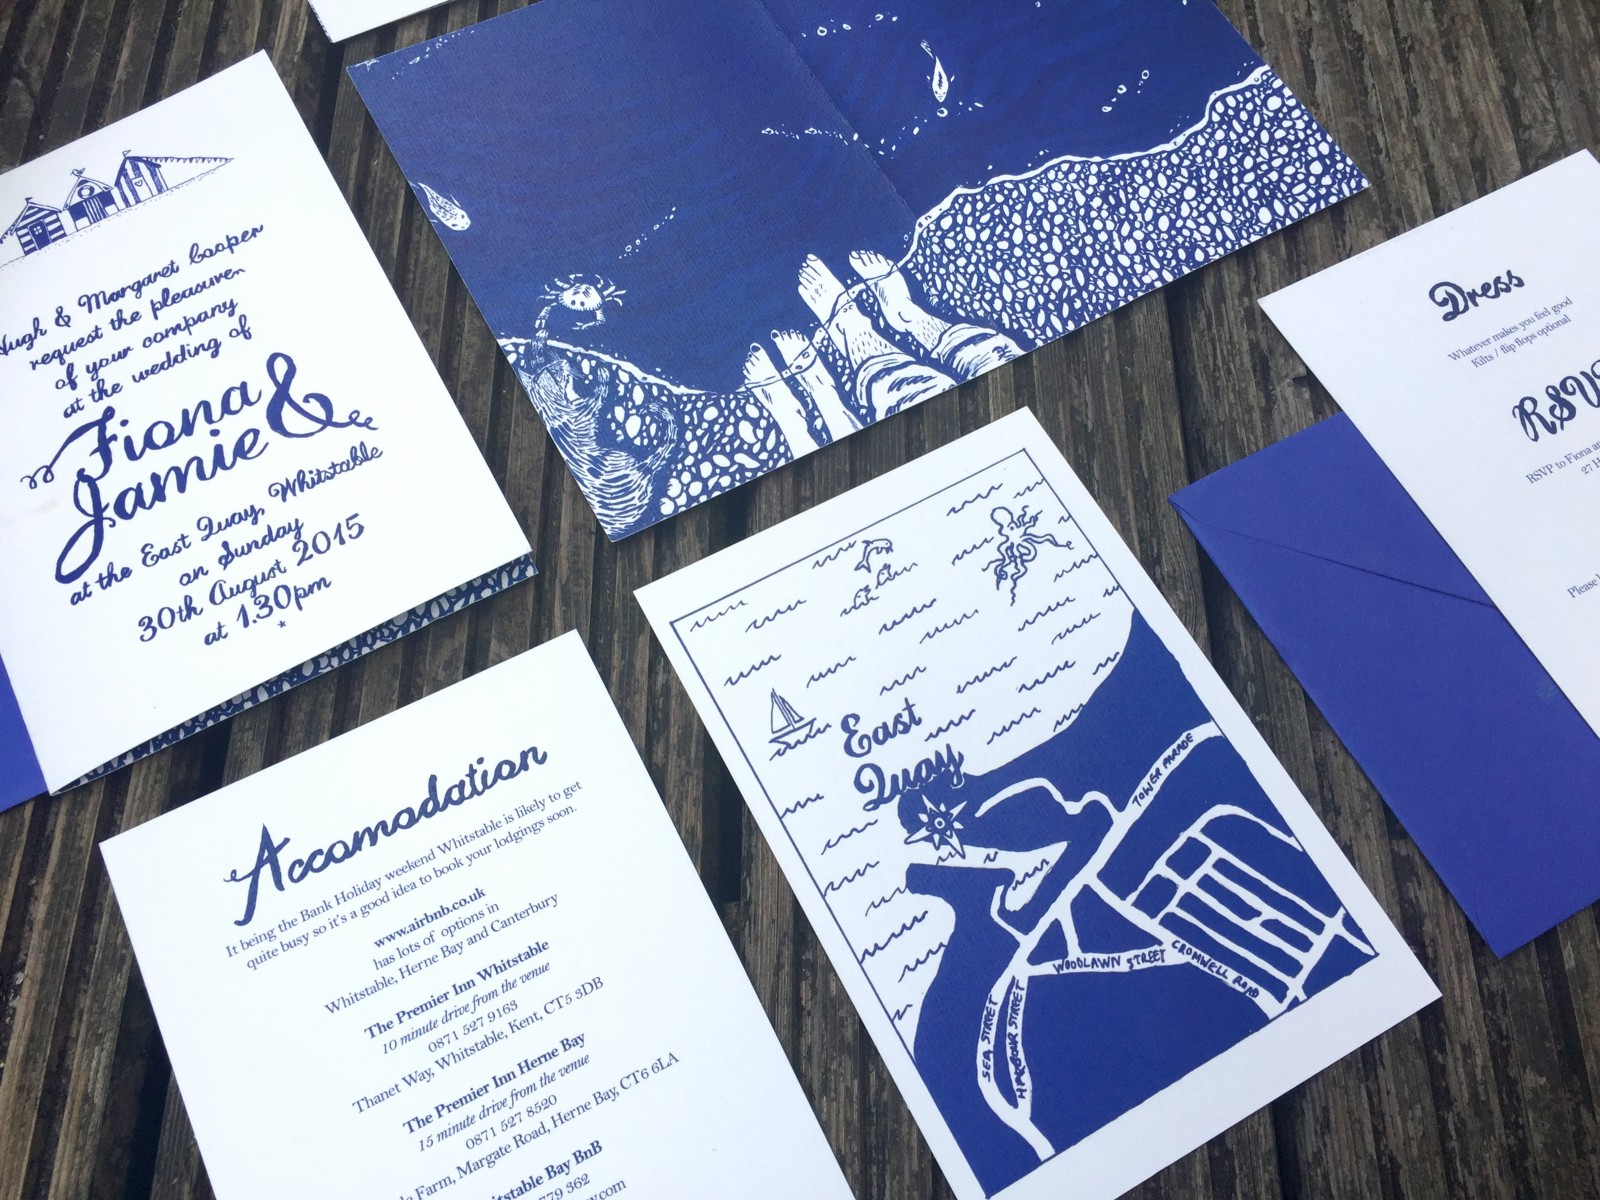 Wedding invitations designed by shillington graduates emily kerrs hand lettering and custom illustration for this wedding invitation set really captures the feel of a summer nautical wedding solutioingenieria Image collections